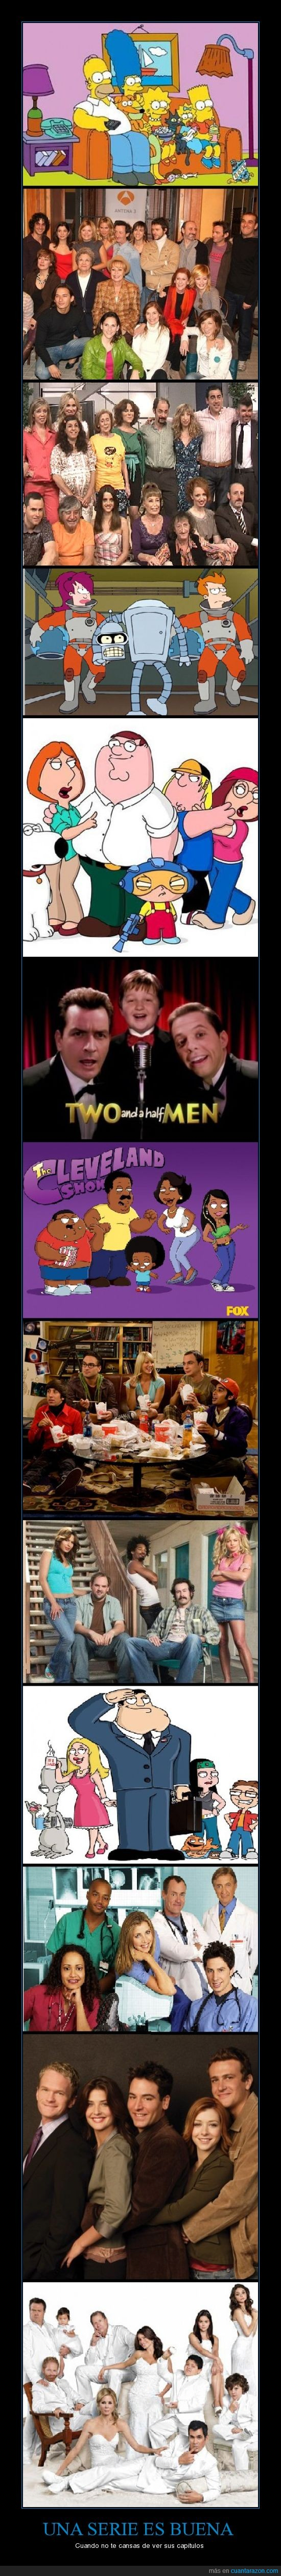 american dad,anhqv,aqui no hay quien viva,como conoci a vuestra madre,dos hombres y medio,el show de cleveland,family guy,futurama,how i meet your mother,la que se avecina,lqsa,me llamo earl,modern family,my name is earl,padre de familia,padre made in usa,scrubs,simpsons,the big bang theory,the cleveland show,two and a half men